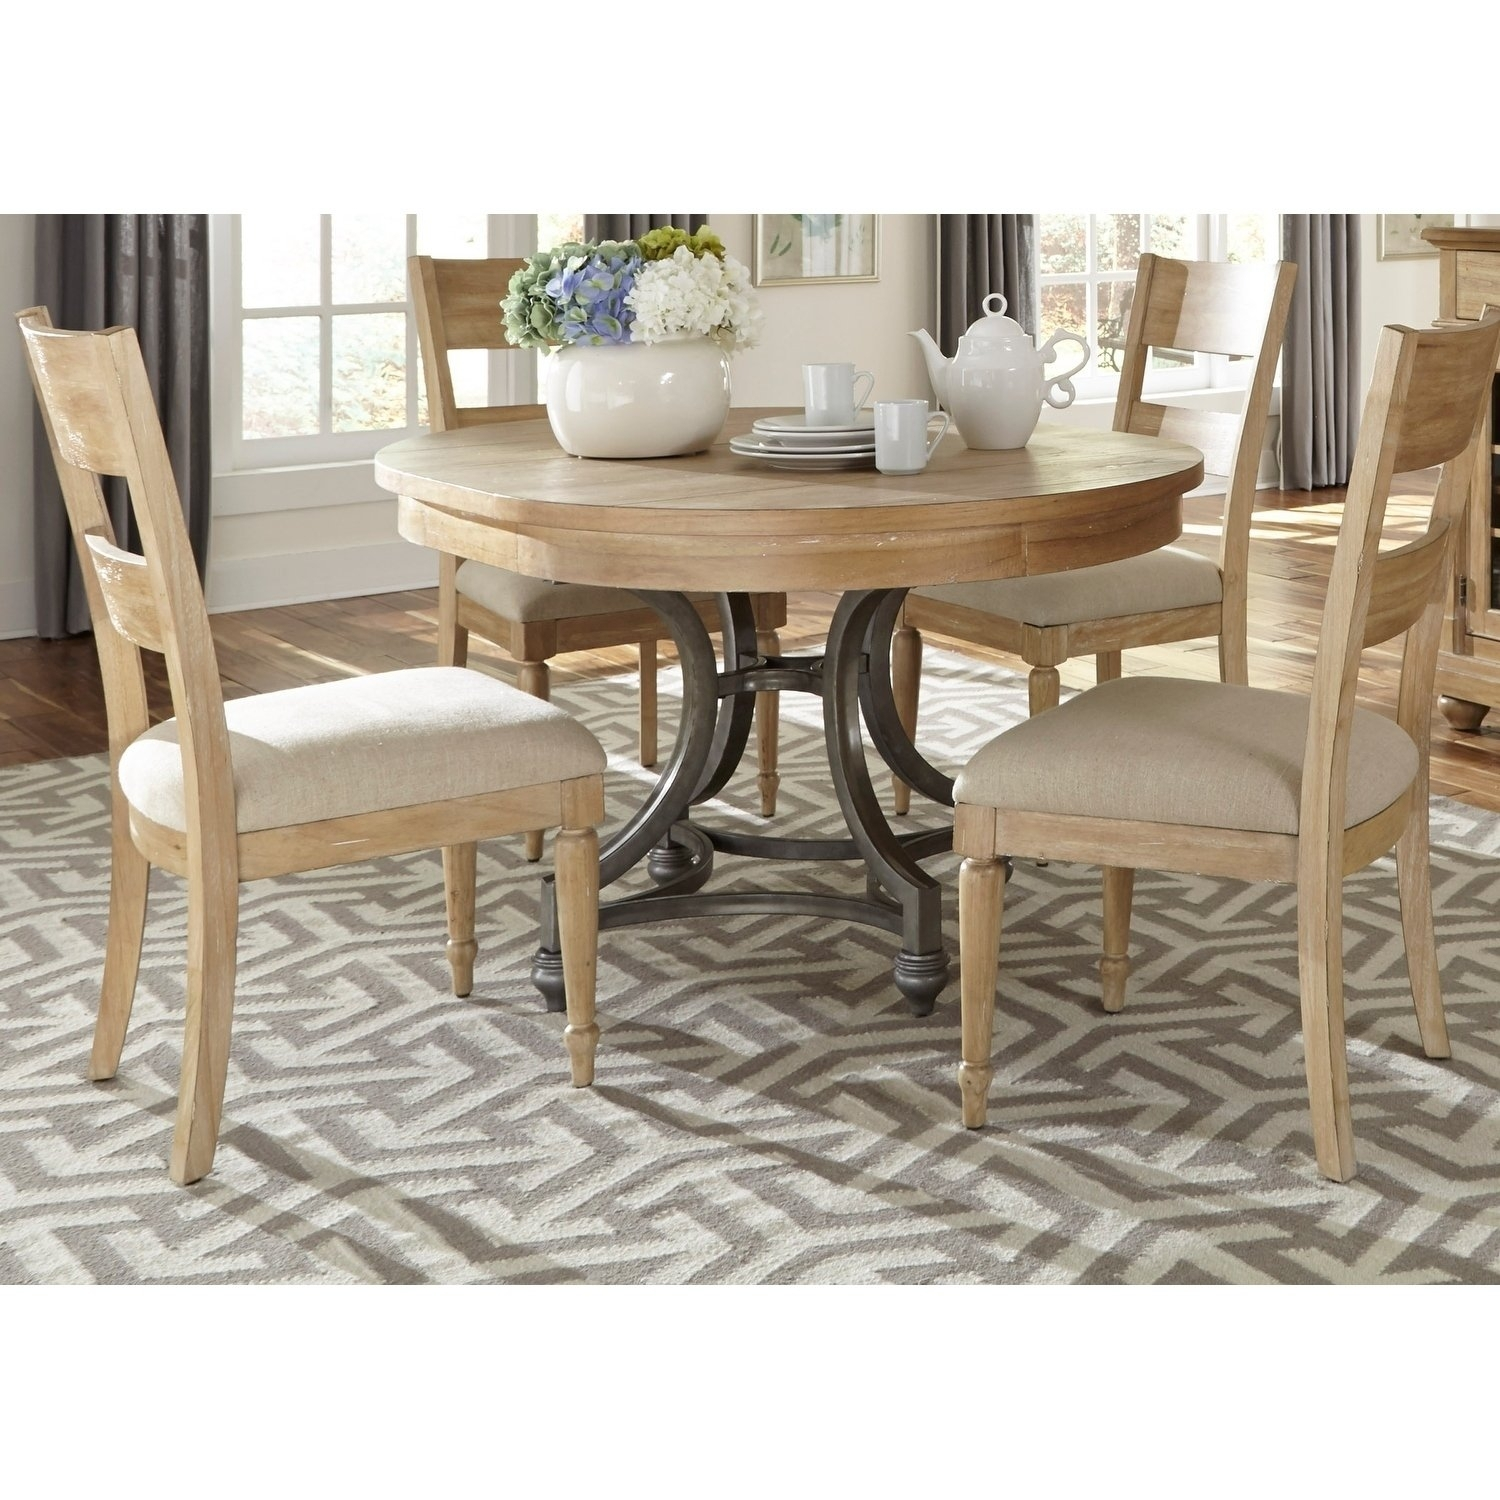 Fashionable Mindy Slipcovered Side Chairs Regarding Shop Harbor View Sand 5 Piece Round Table Set – On Sale – Free (#4 of 20)